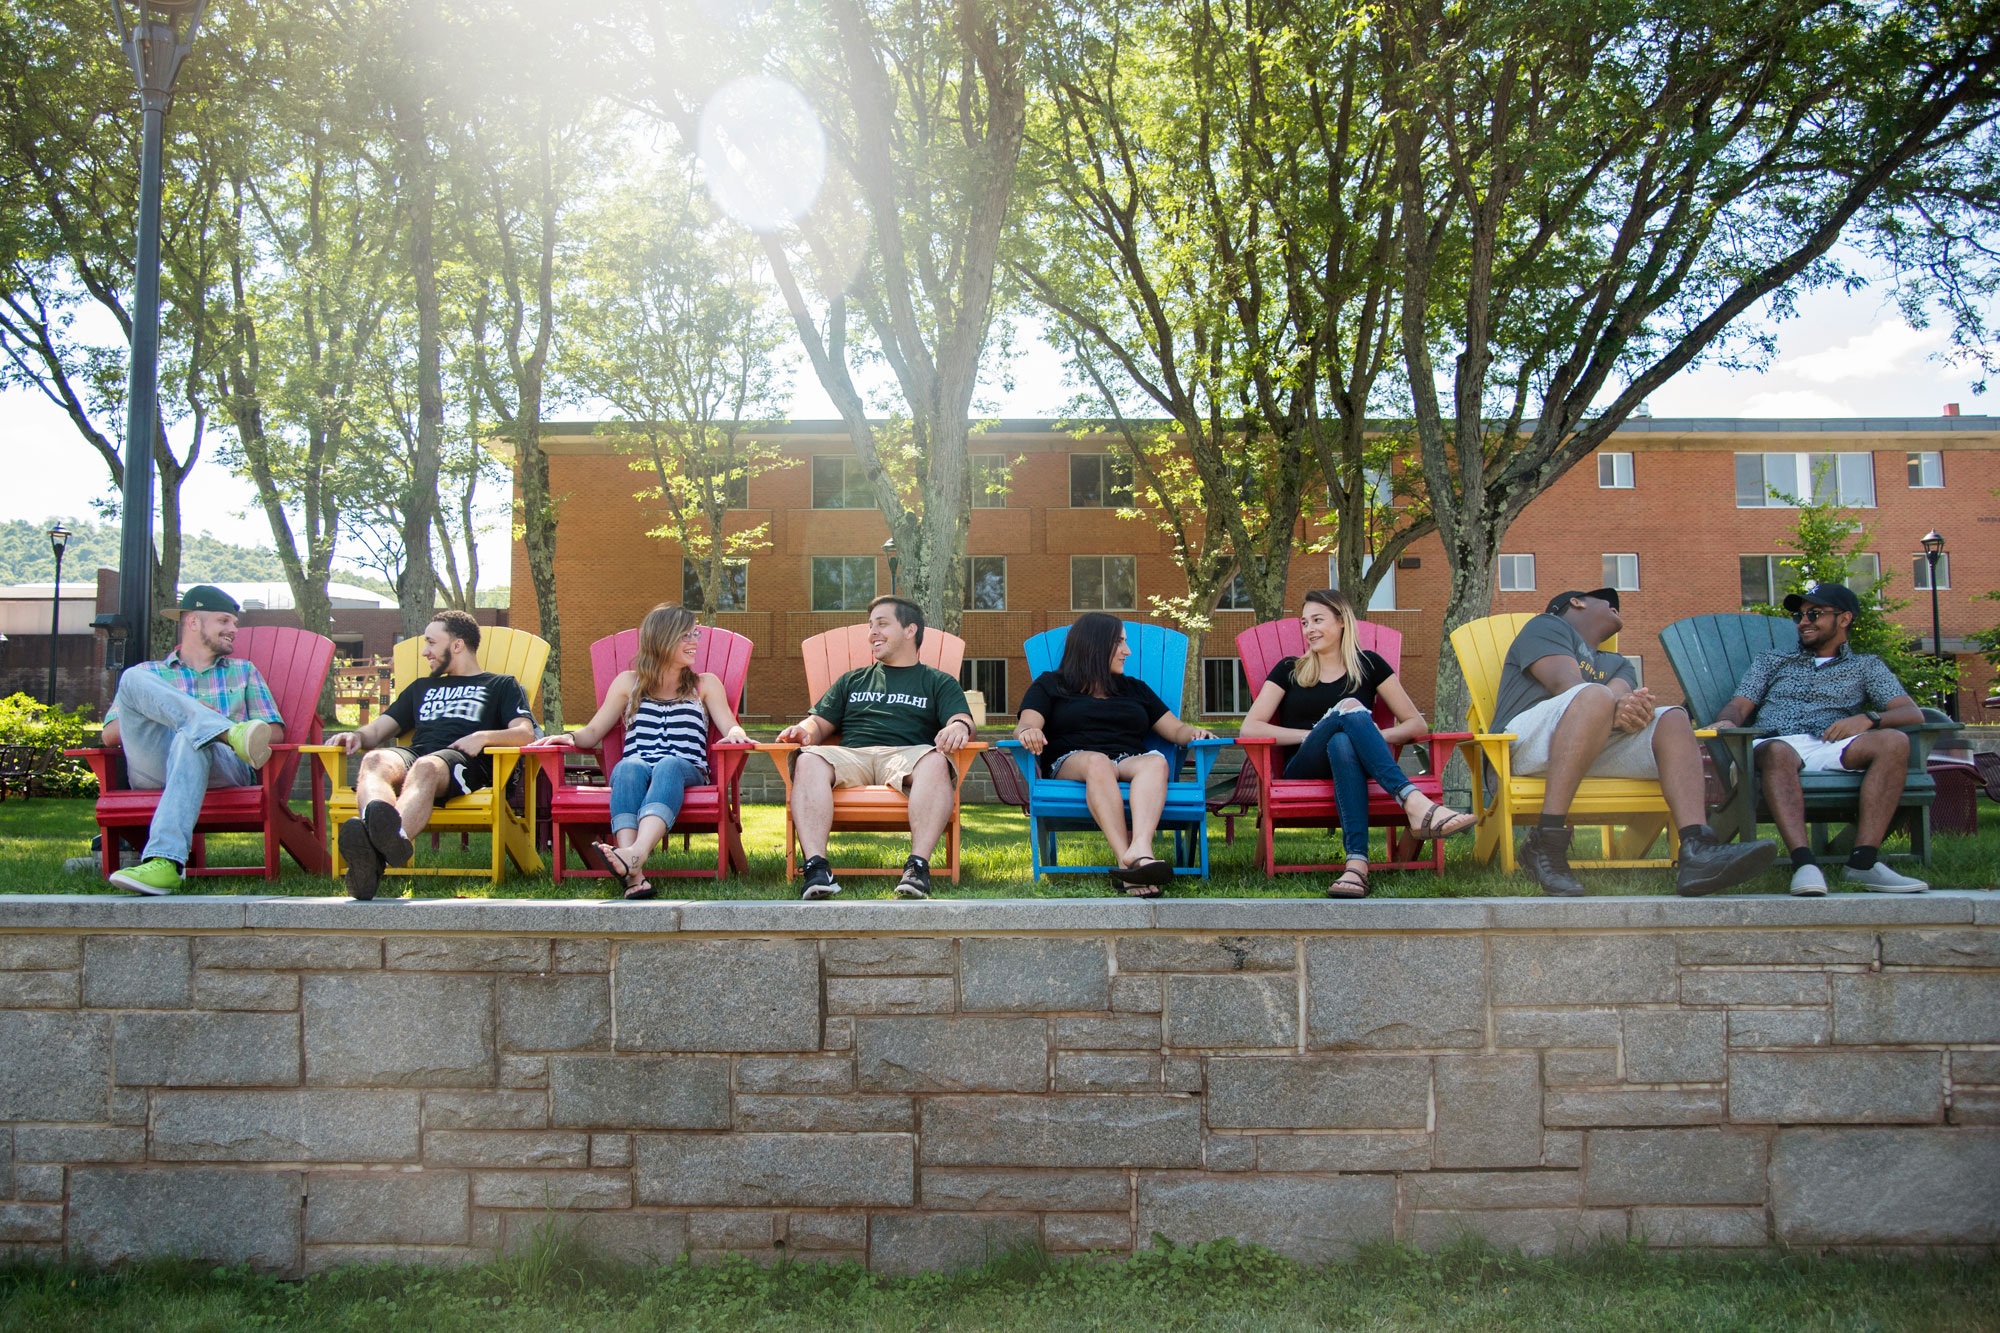 Kids Sitting on Colorful Seats